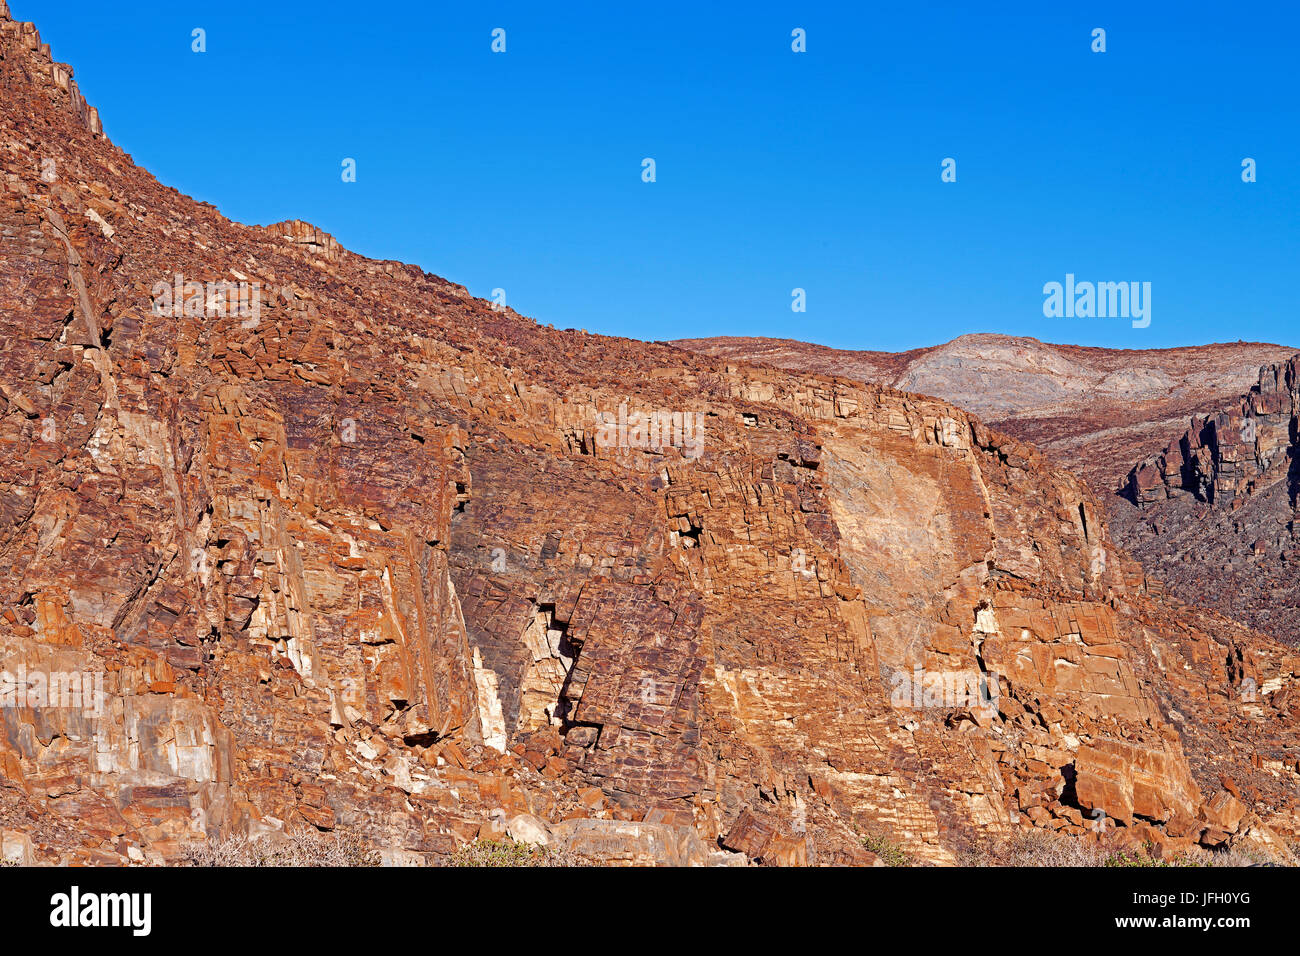 eroded, coloured cliff face with rejections, Damaraland, Namibia - Stock Image